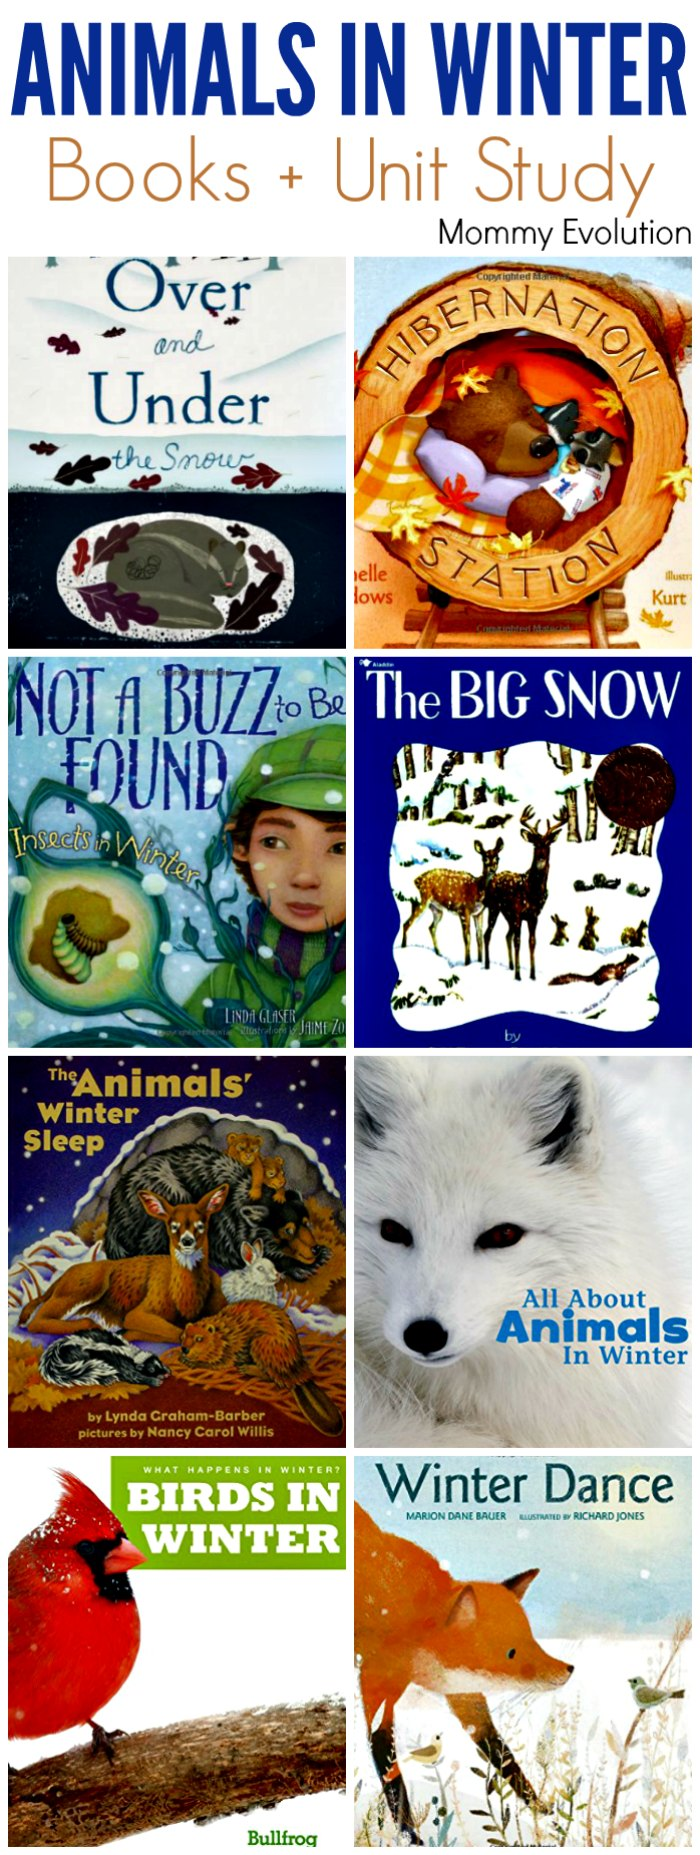 Animals in Winter Books for Kids - Awesome books about what animals do in winter, from hibernation to migration to foraging | Mommy Evolution